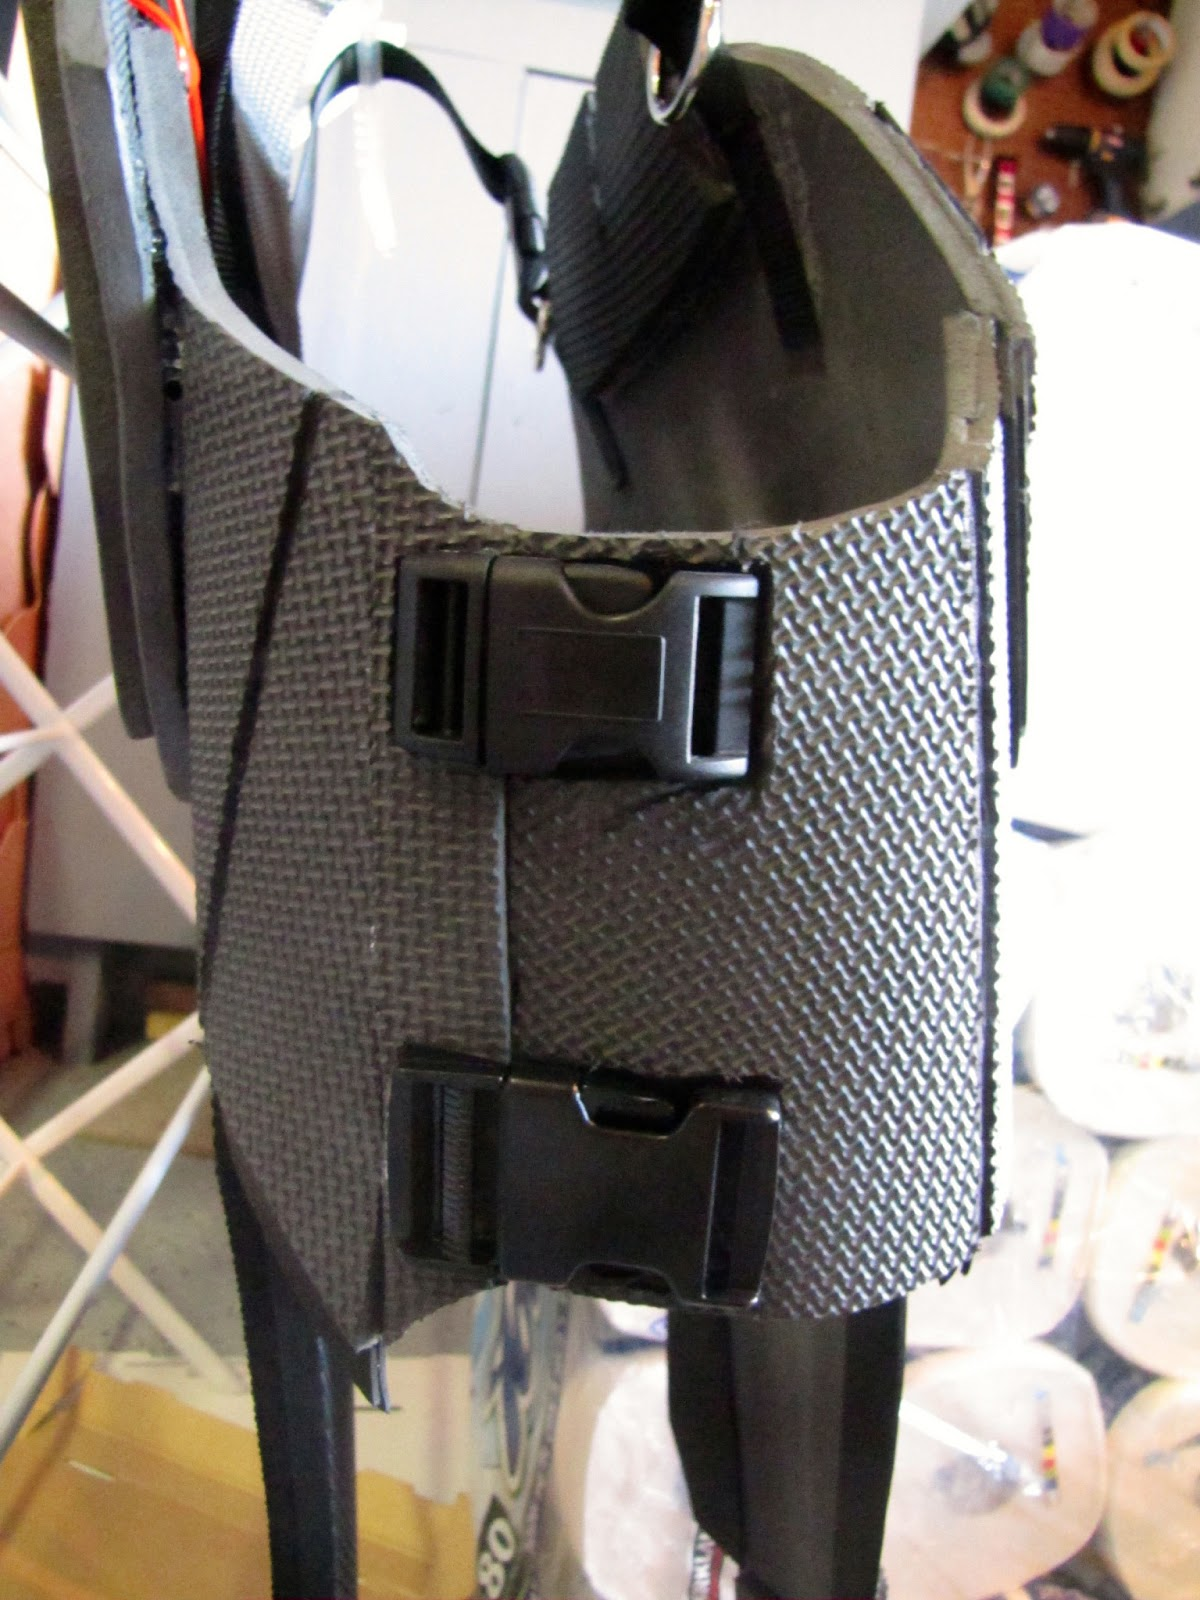 N7 mass effect armor build day 13 straps buckles clips ect n7 mass effect armor build maxwellsz